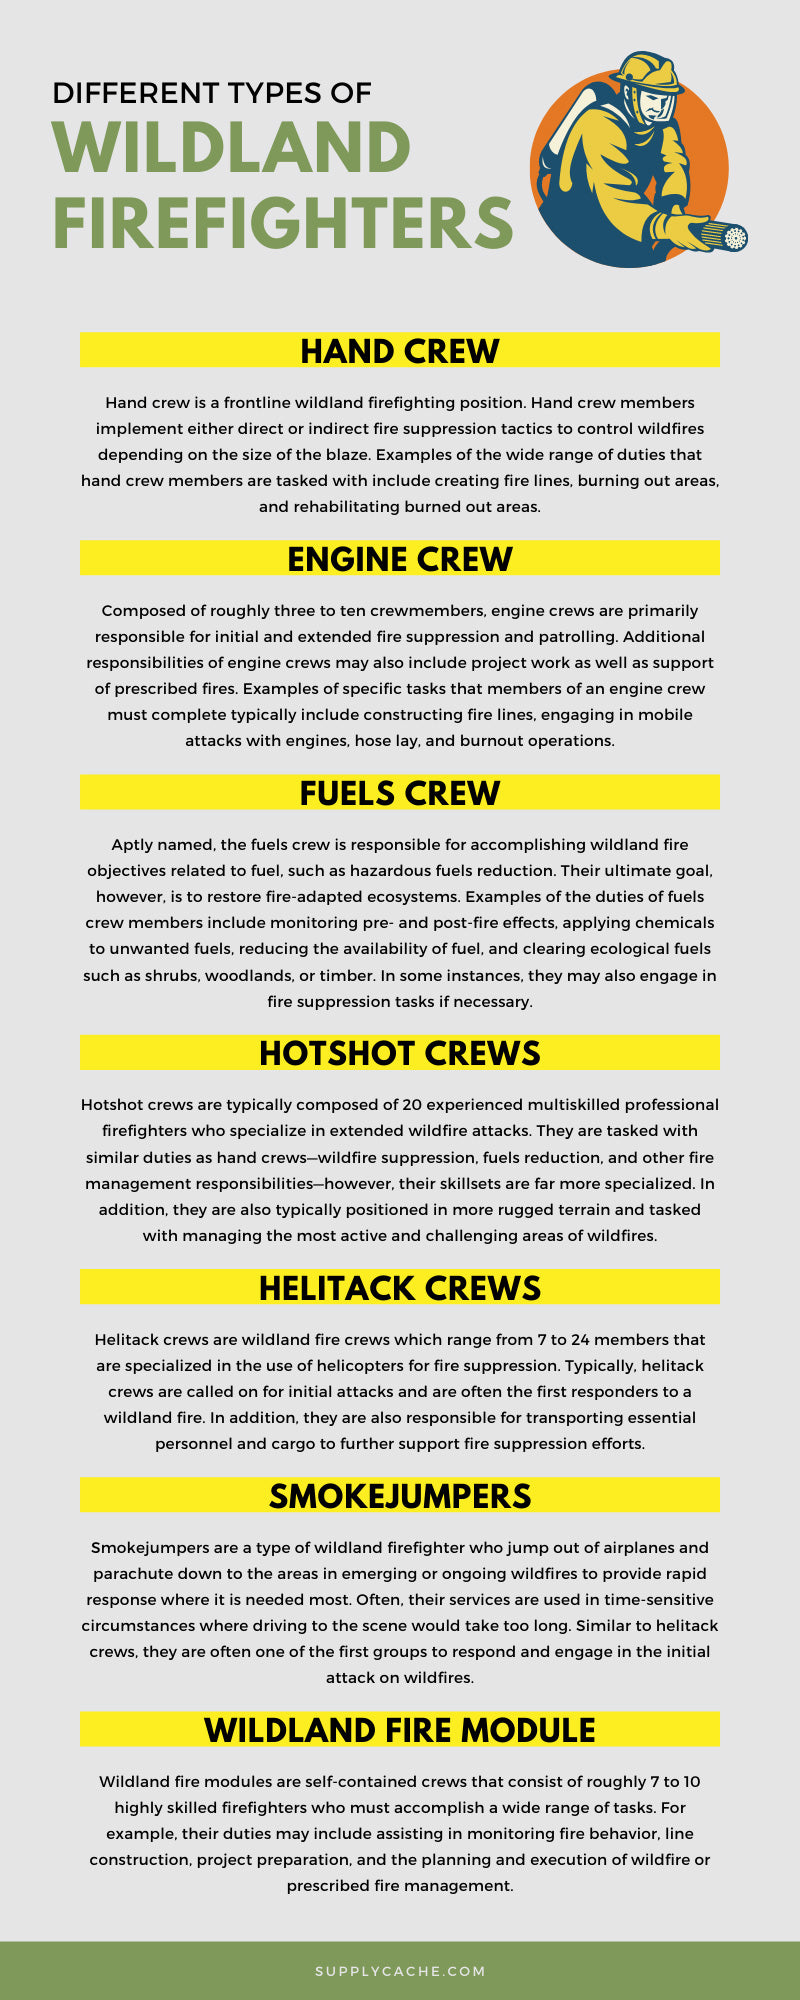 Types of Wildland Firefighters